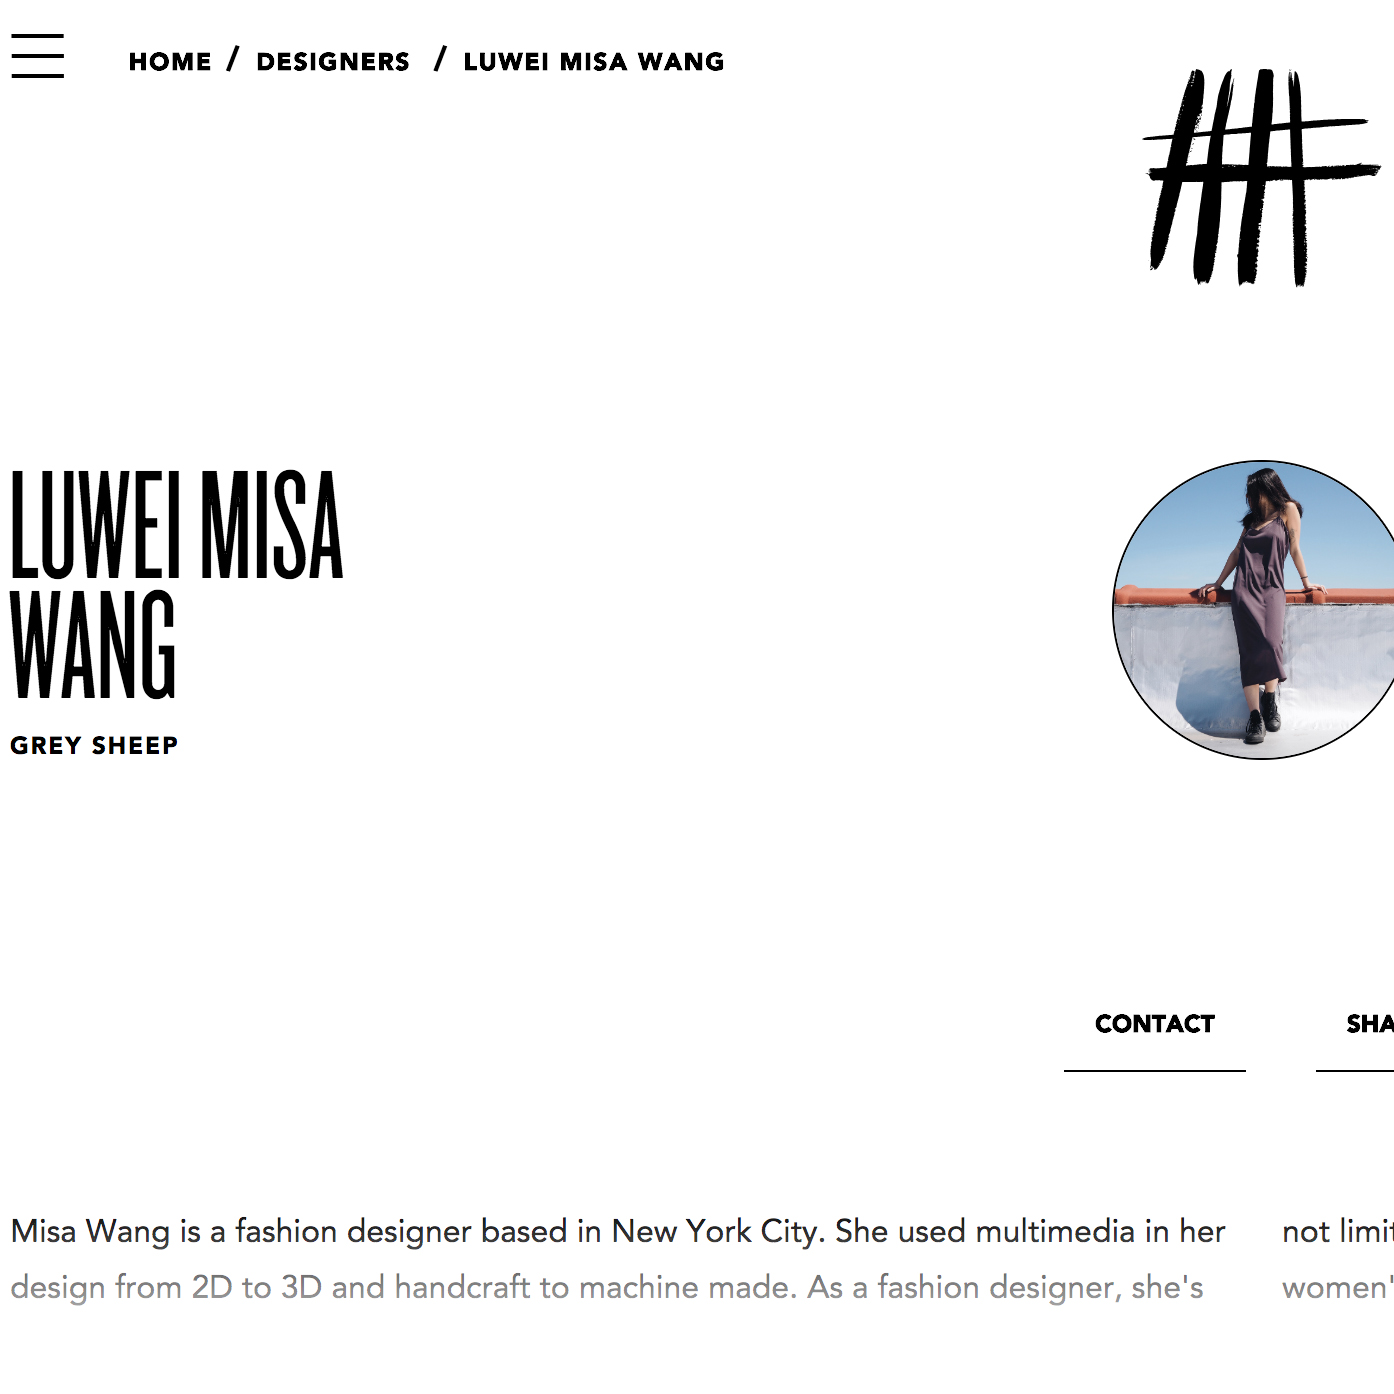 NOT JUST A LABEL   NJAL full collection featured designer.   https://www.notjustalabel.com/designer/luwei-misa-wang